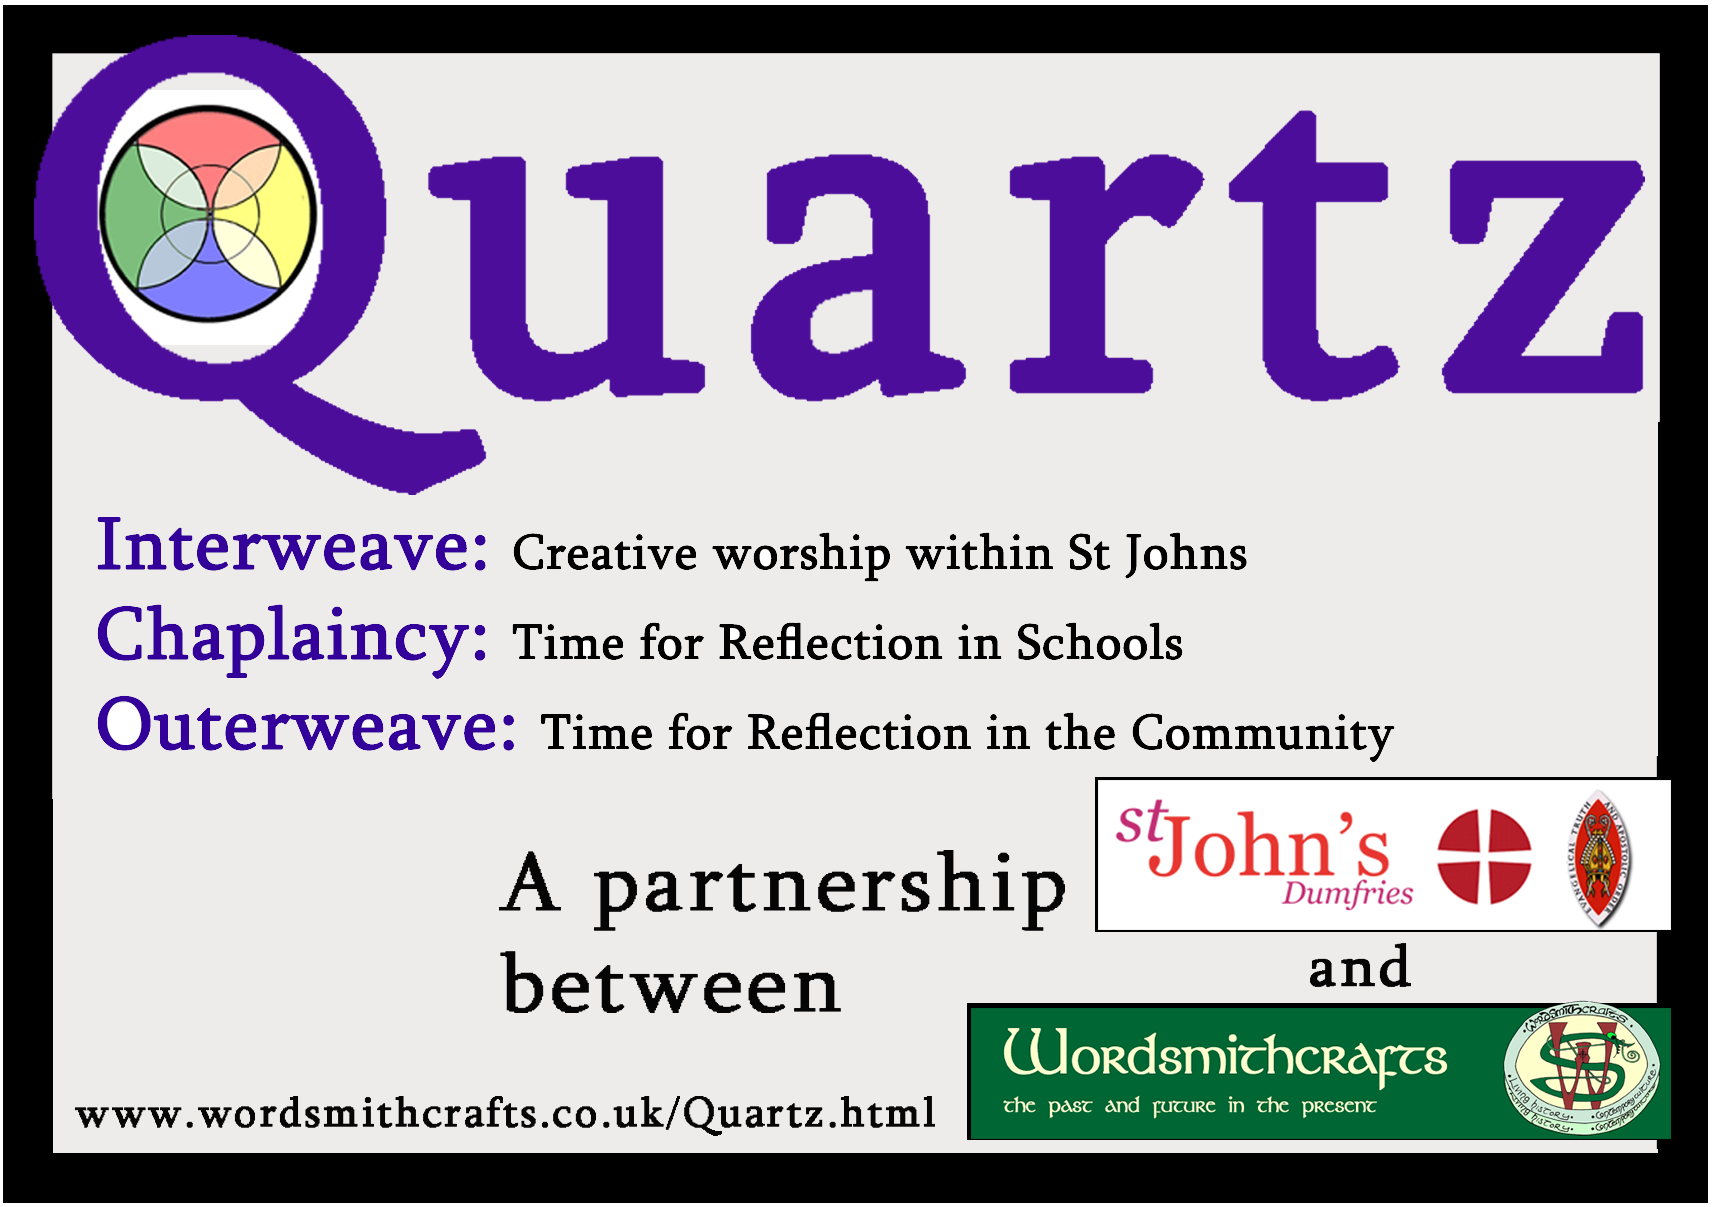 The quartz logo